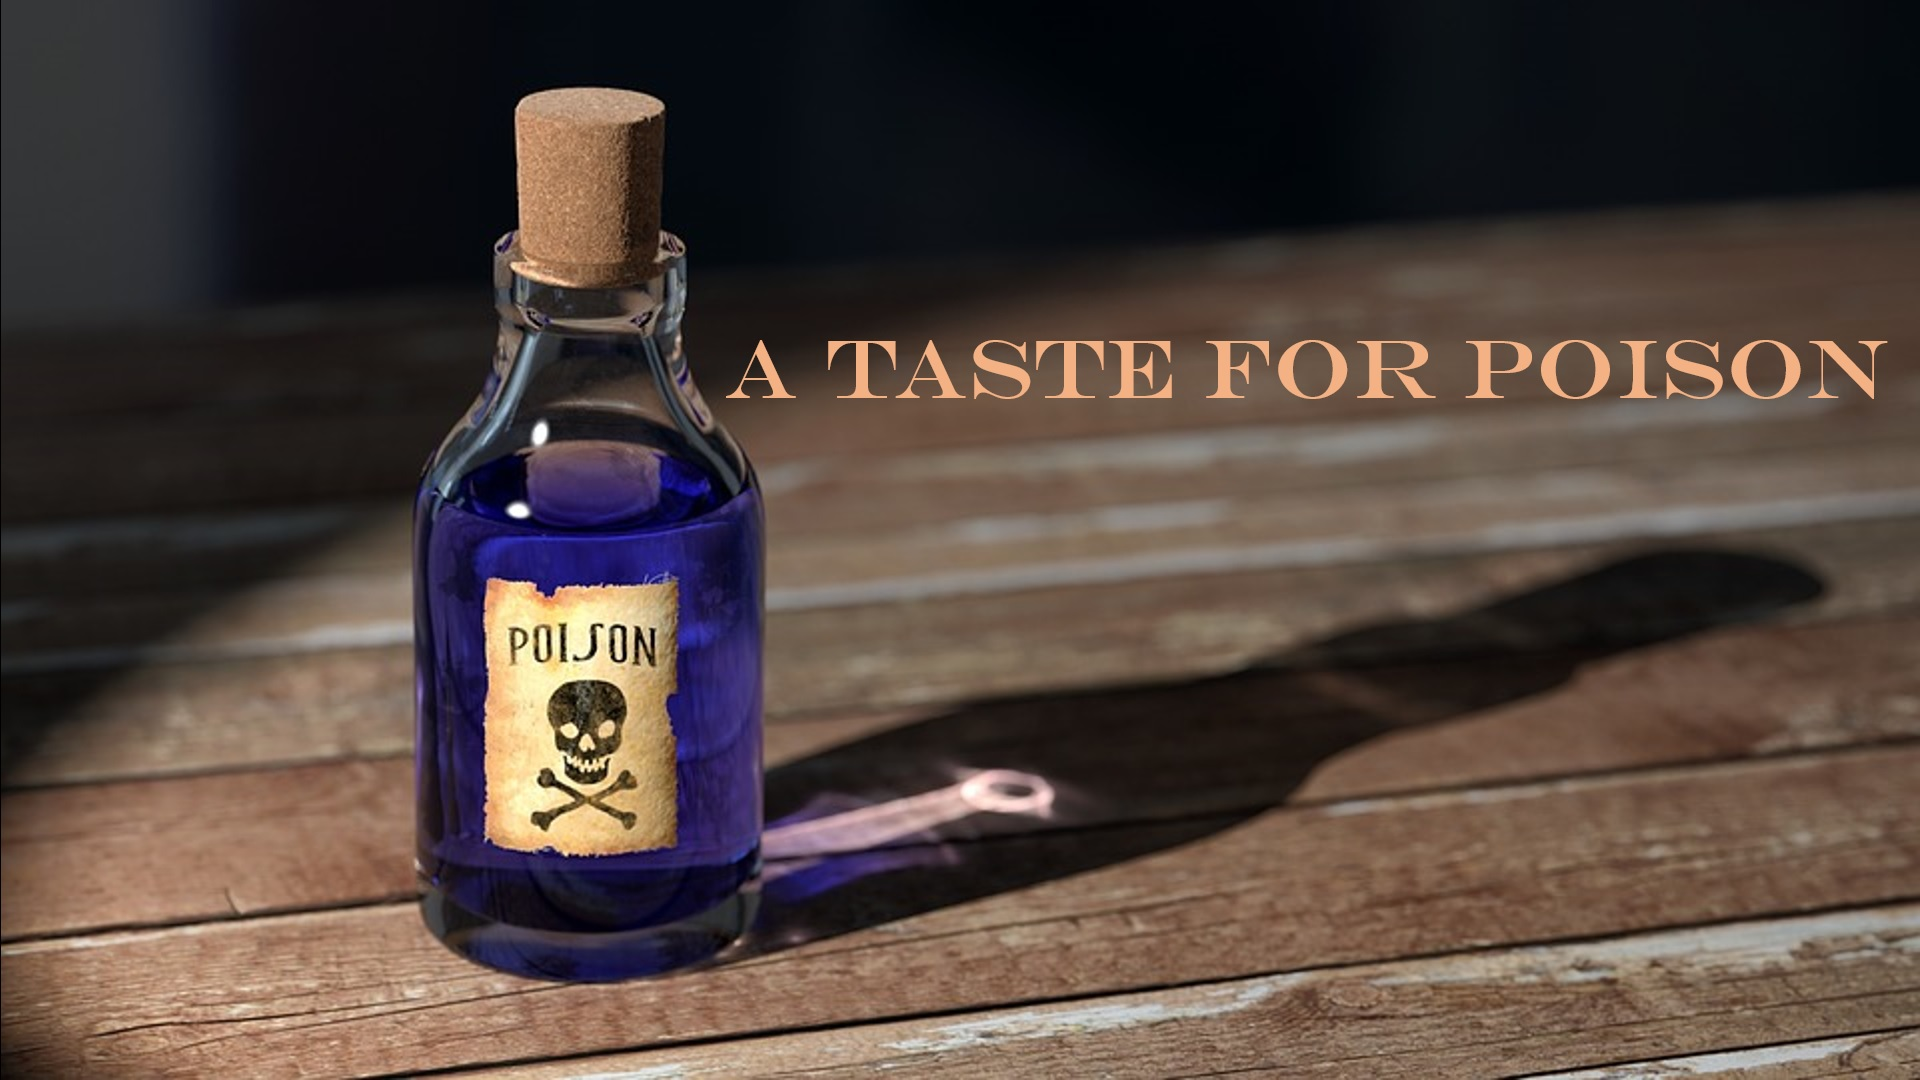 A bottle of poison